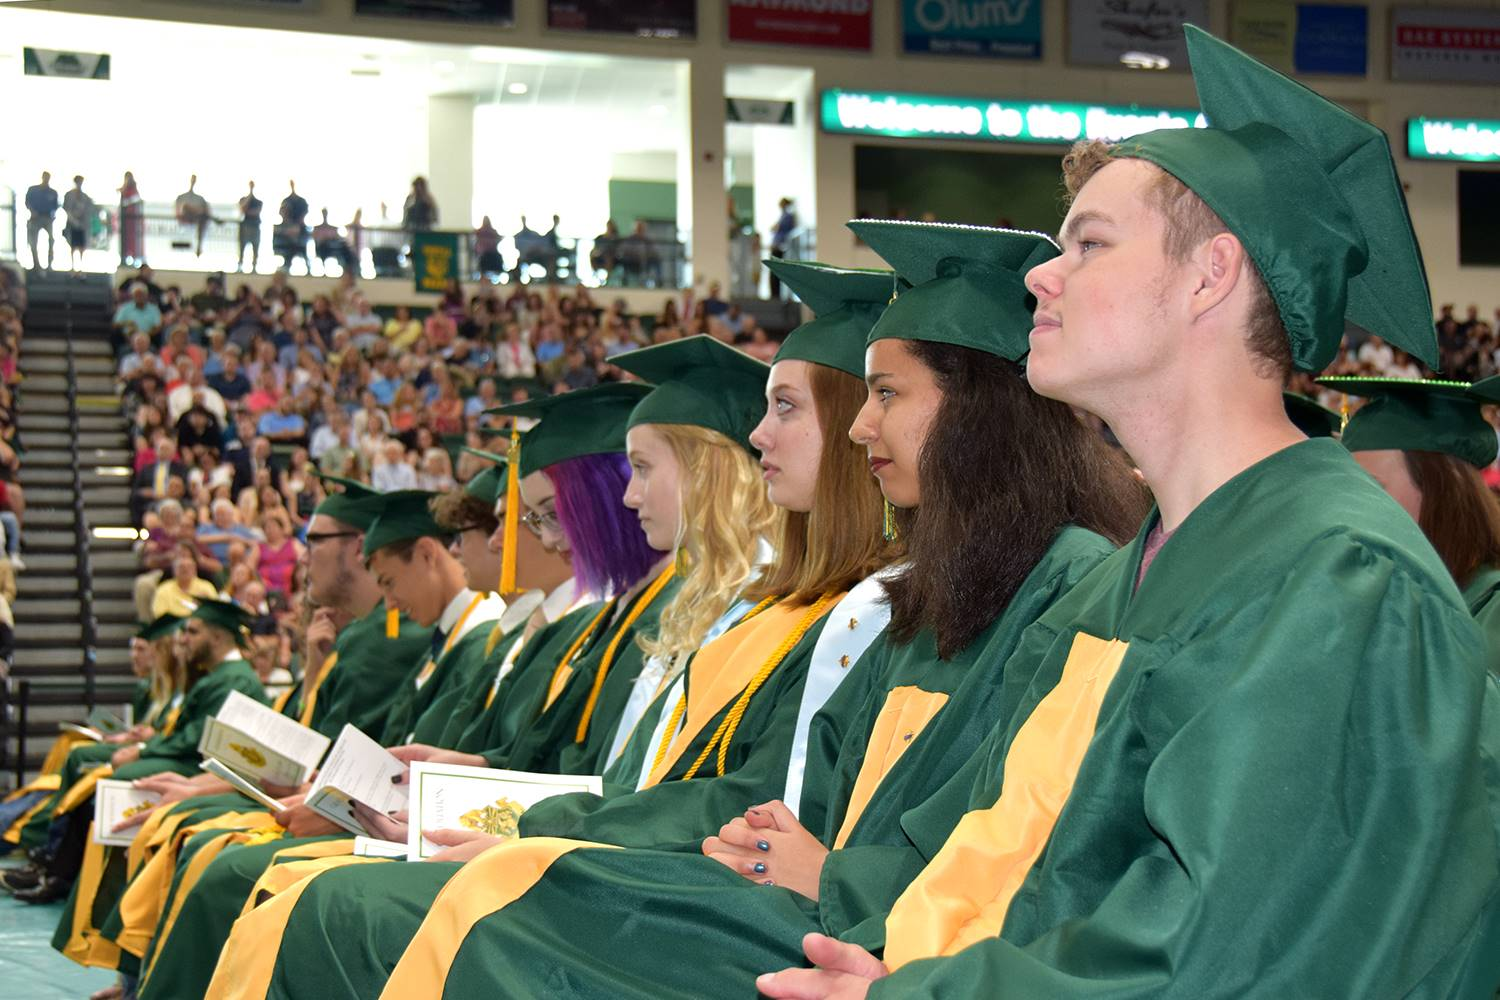 Graduation candidates in the front row listen respectively to their Valedictorian during his graduat